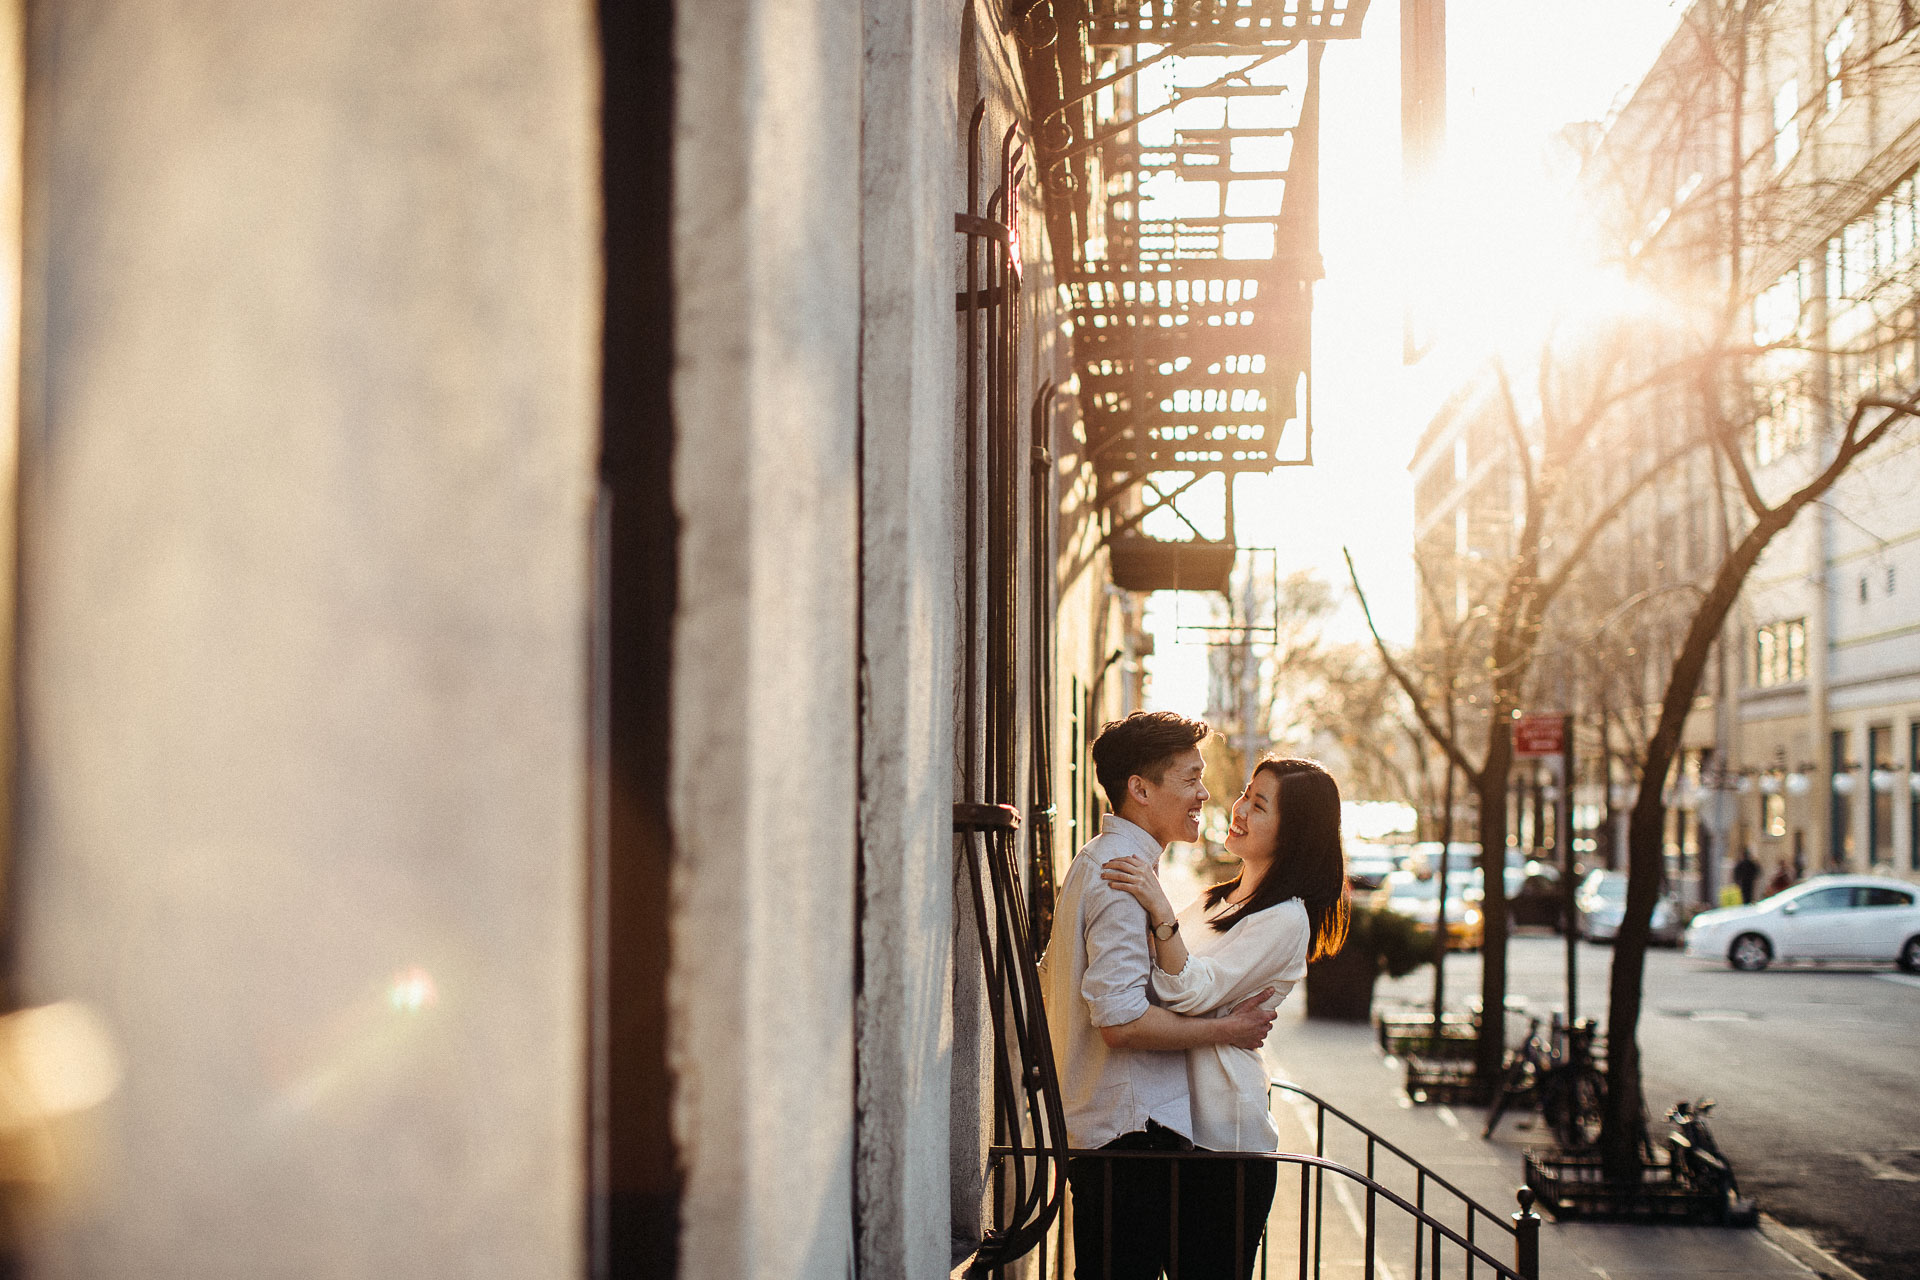 Jean & Mike Engagement Session in West Village, New York . Jean-Laurent Gaudy Photography